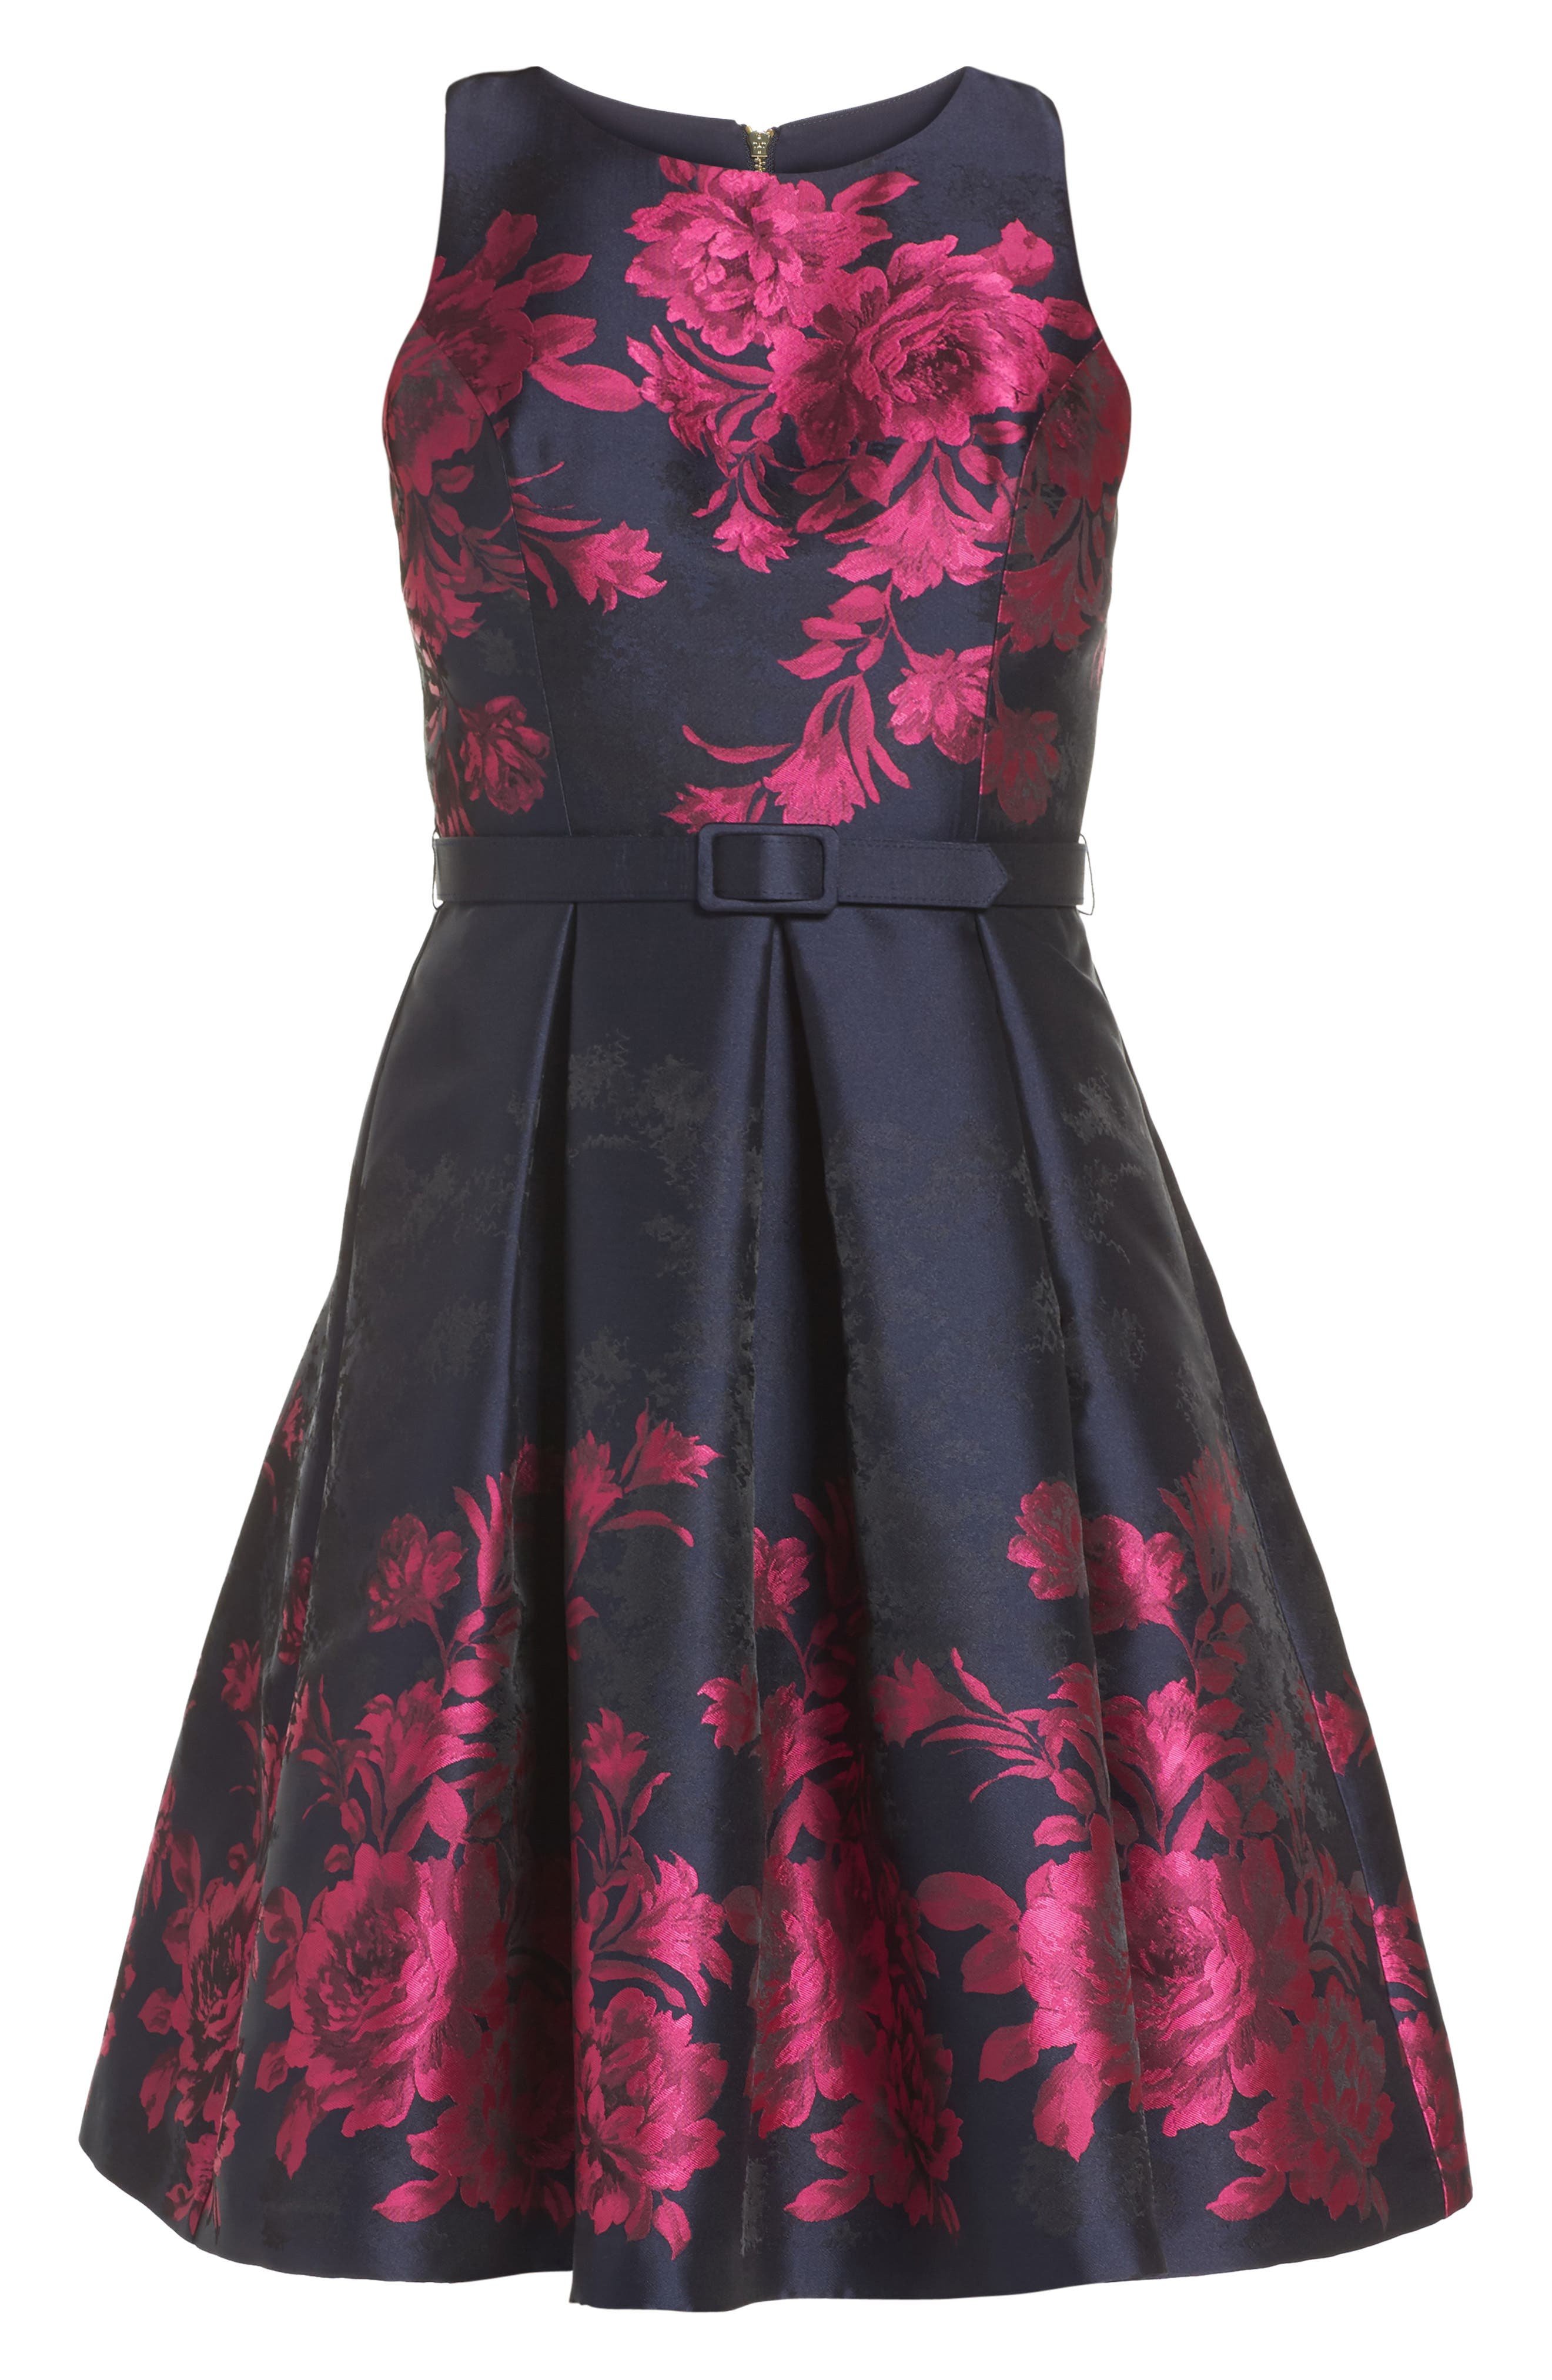 Floral Jacquard Fit & Flare Dress,                             Alternate thumbnail 6, color,                             Navy/ Pink